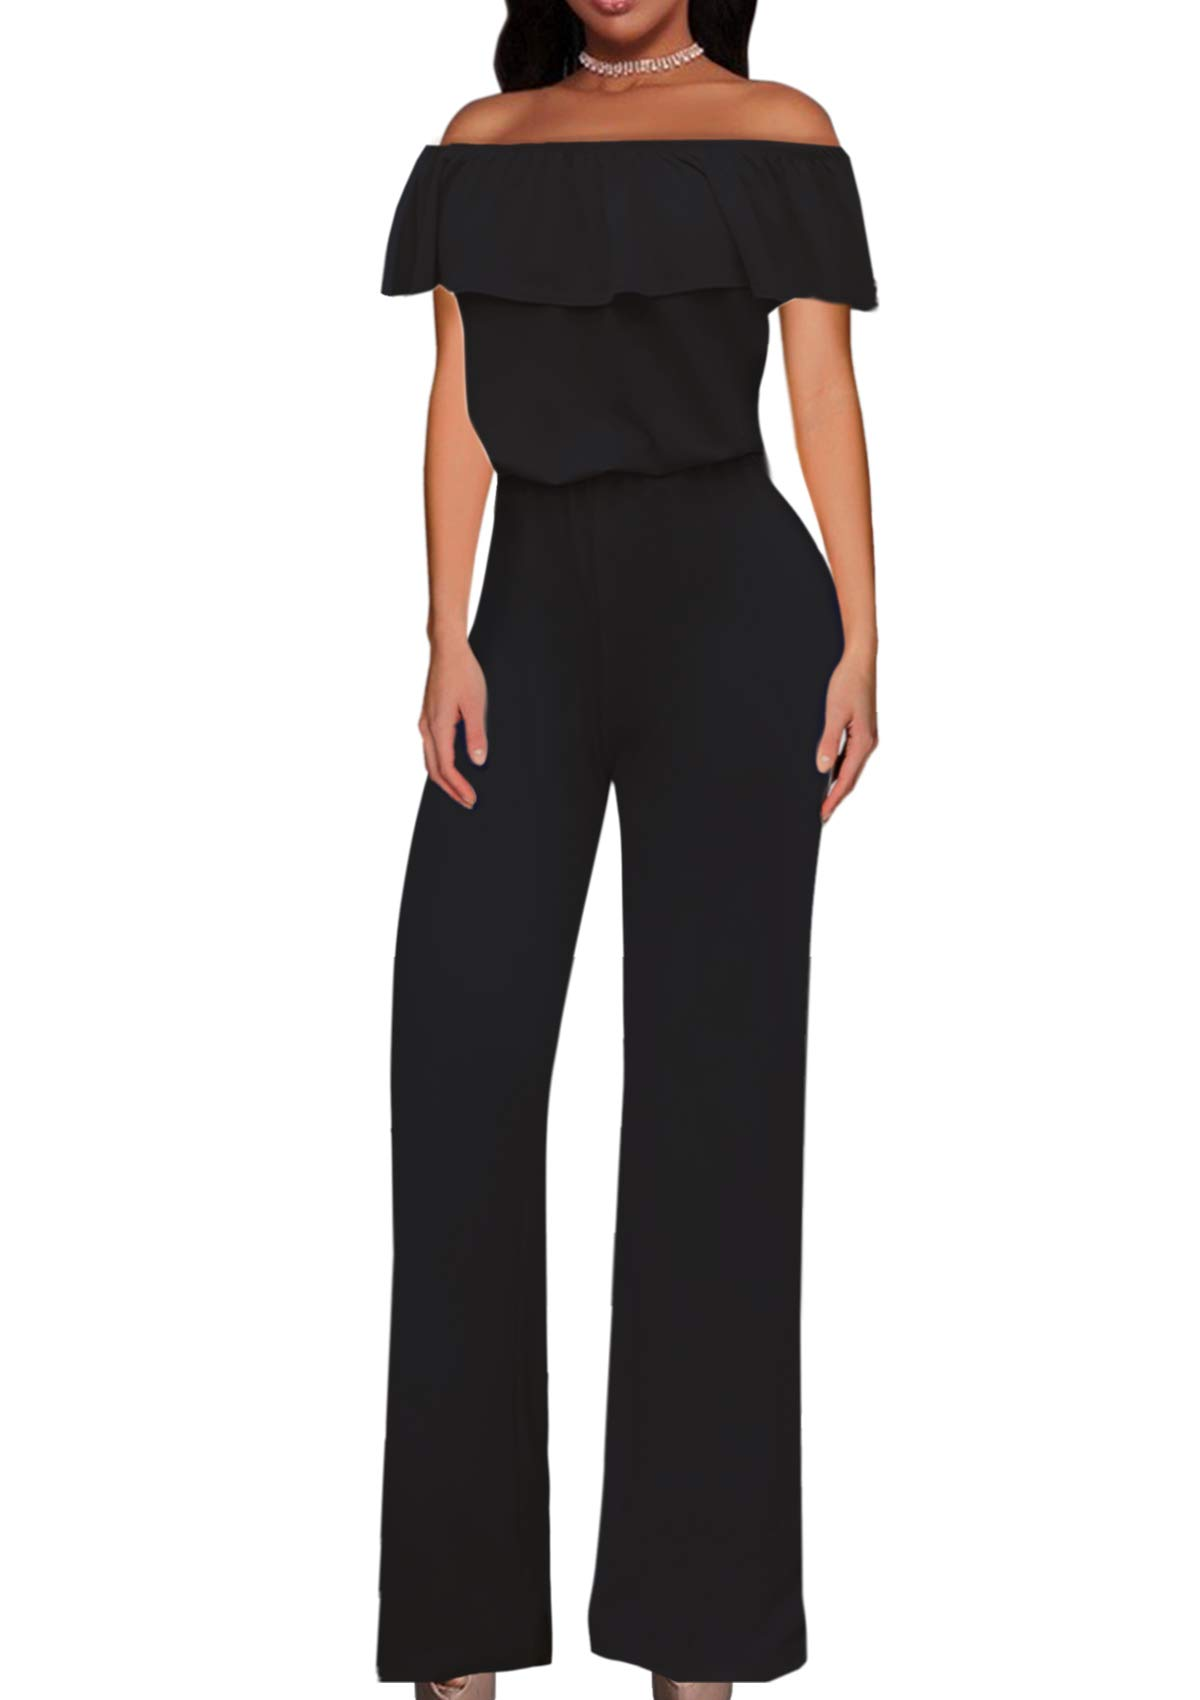 HyBrid & Company Women High Waist Wide Leg Pants Jumpsuit Romper KPVJ47696X Black 2X